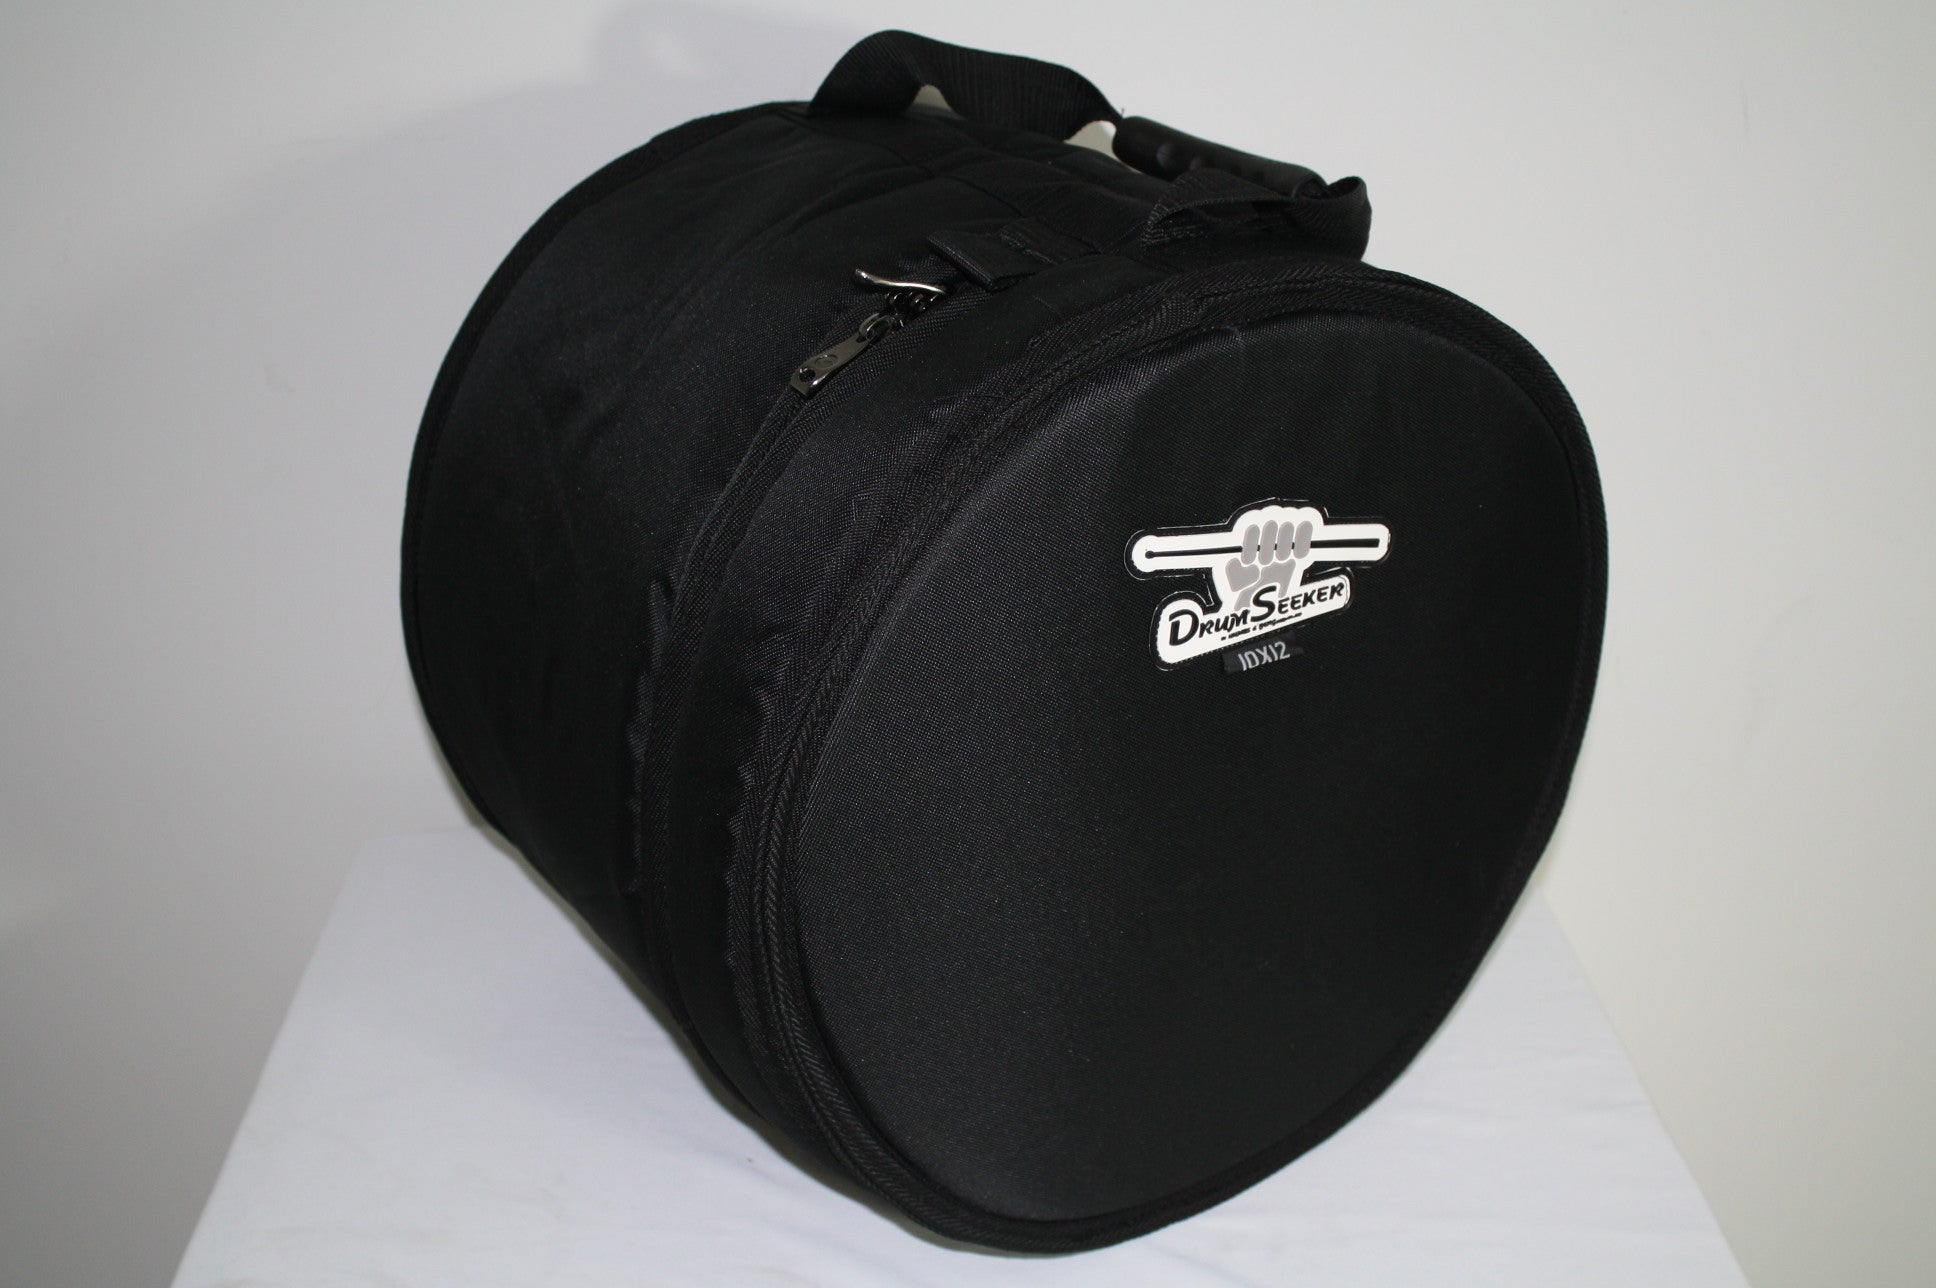 H&B Drum Seeker 7 x 10 Inches Tom Drum Bag